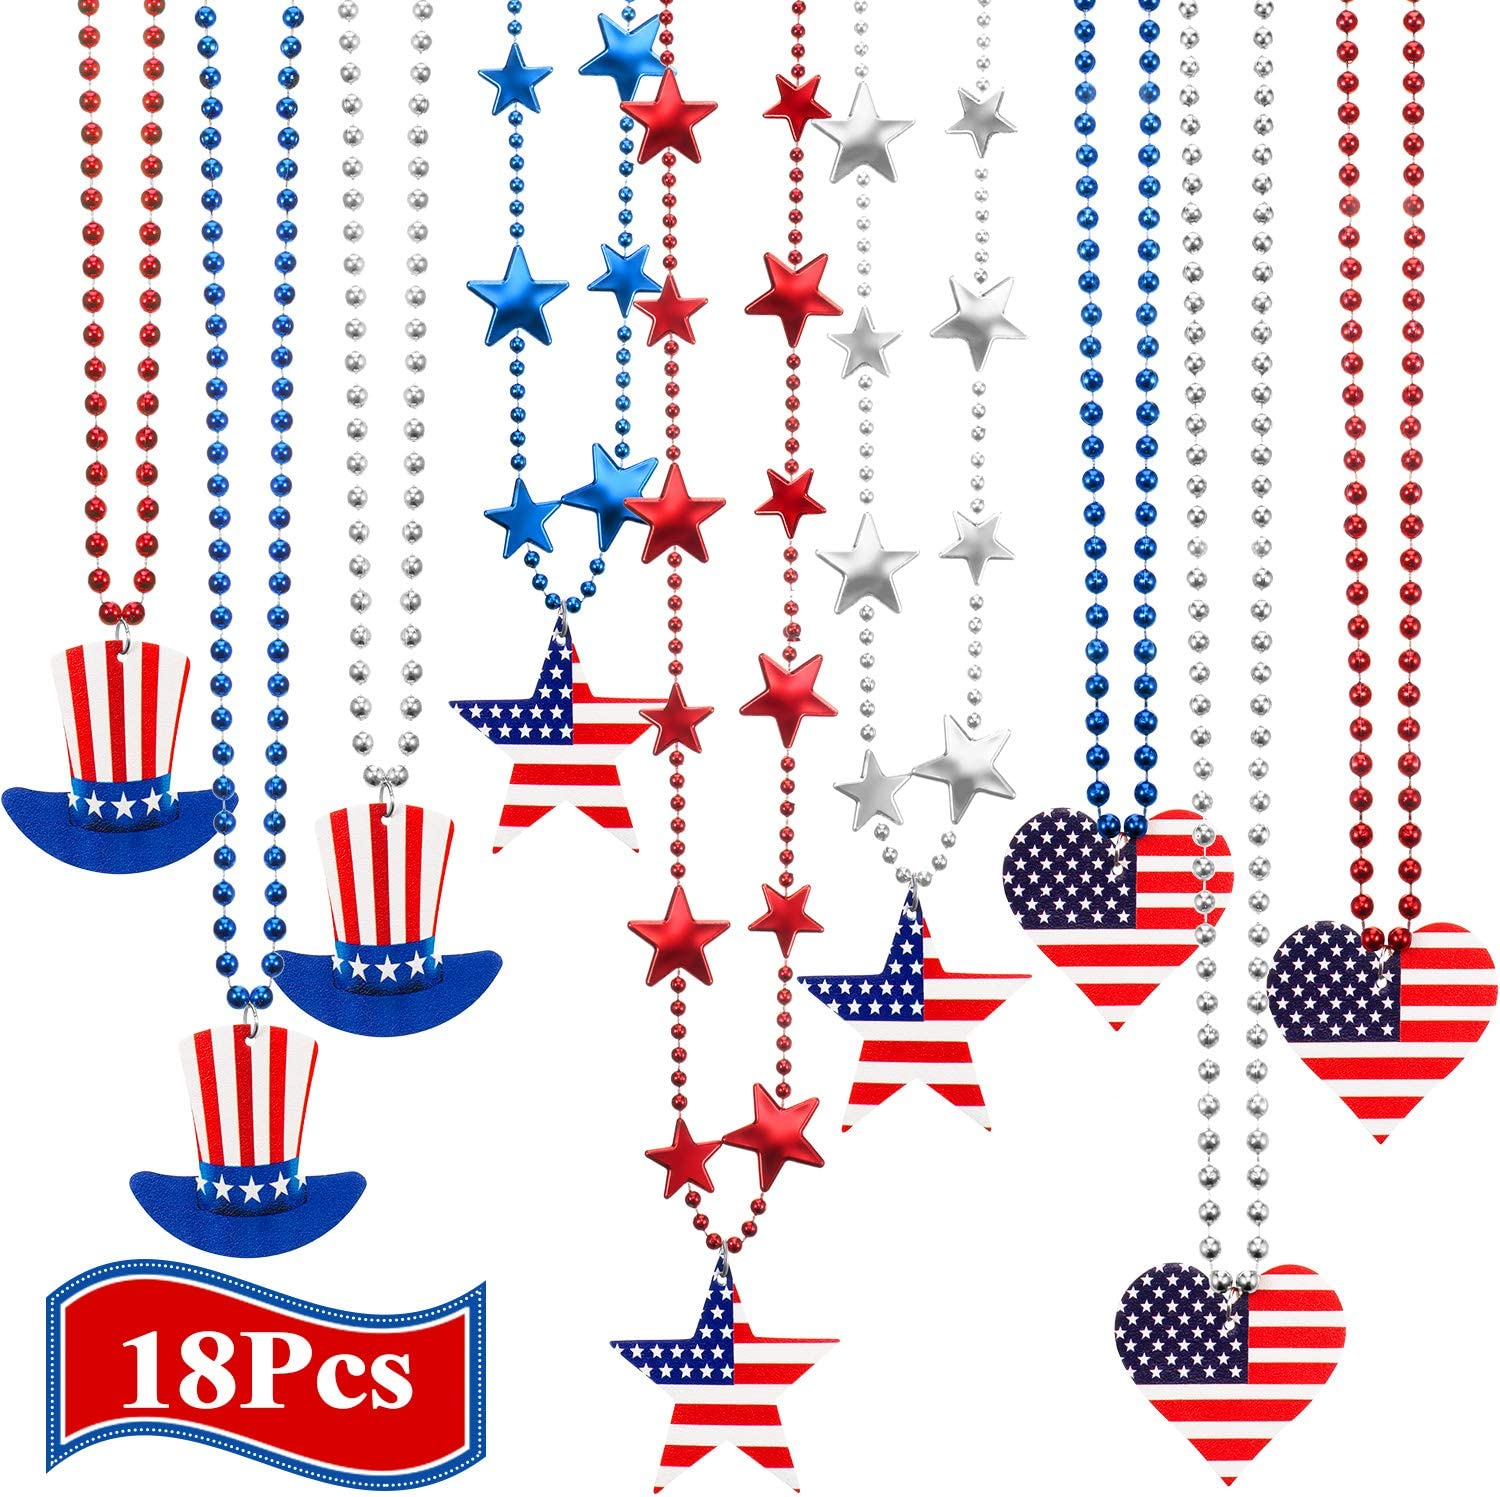 ATROPOS 36 Pcs 4th of July Beaded Necklaces Metallic Patriotic Star Necklaces Independence Day Necklace for Memorial Day Patriotic Events and Independence Day Party